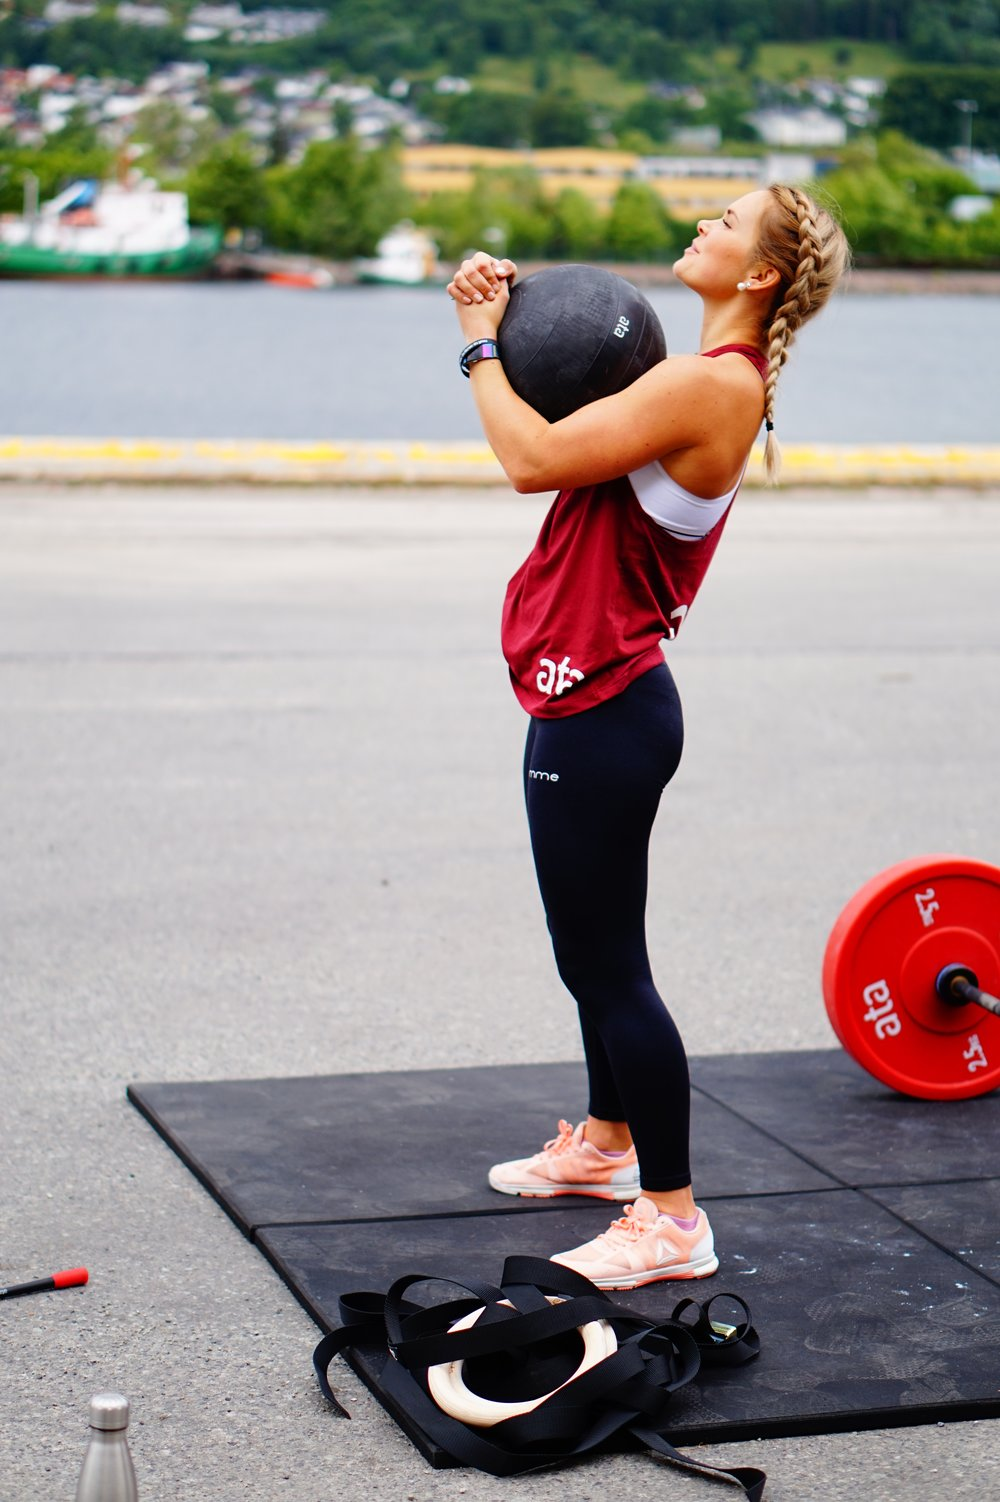 5 WAYS TO KILL THE FITNESS GAME - And stop self-sabotaging FOR GOOD.